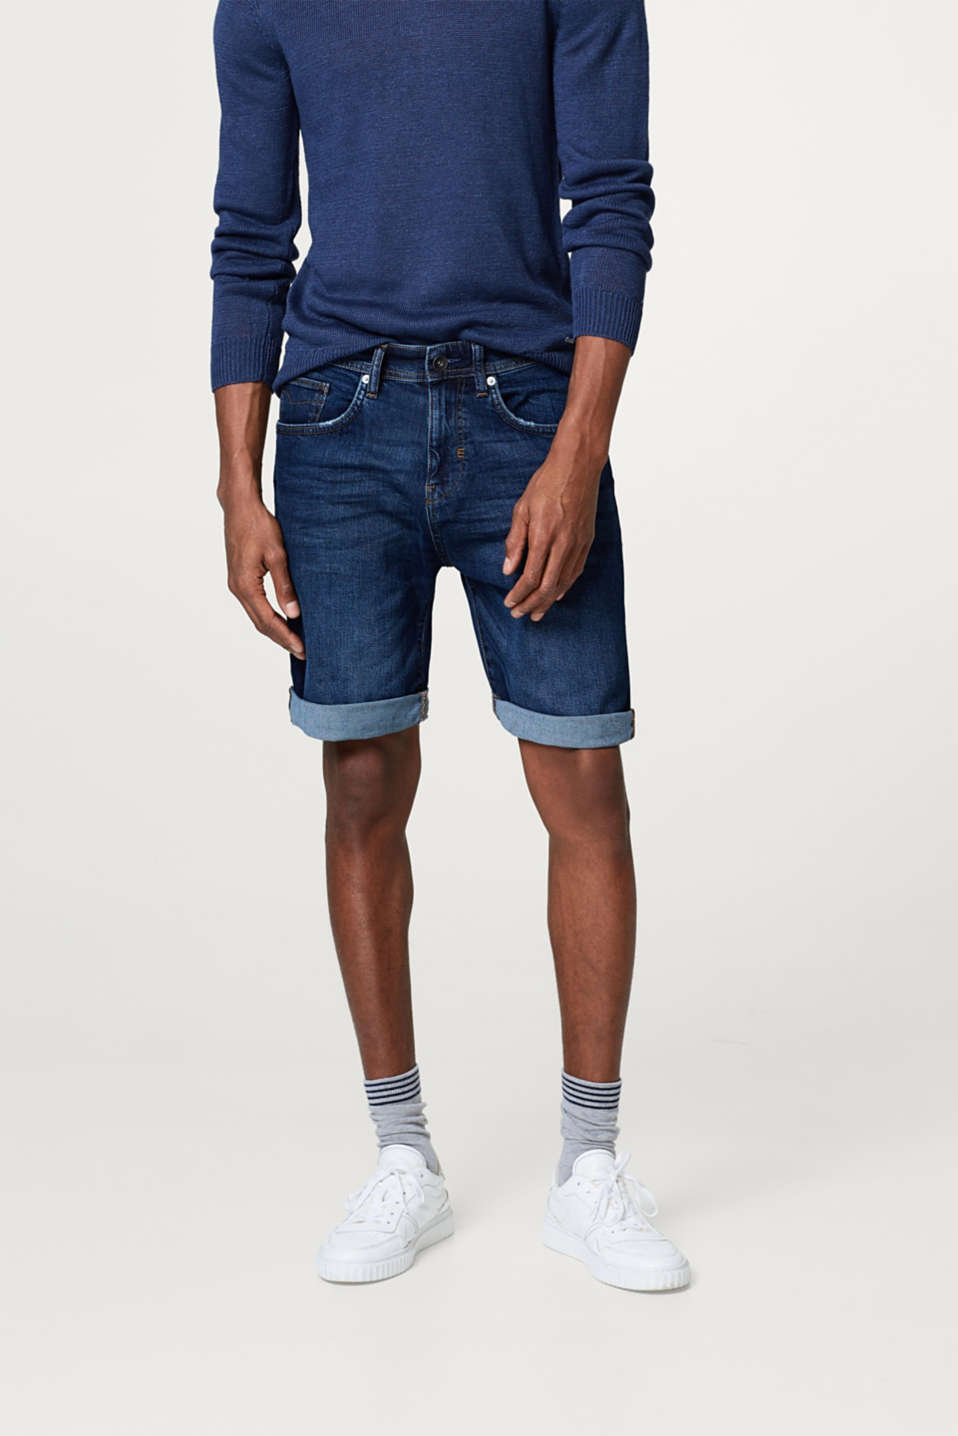 Esprit - Organic cotton denim Bermudas